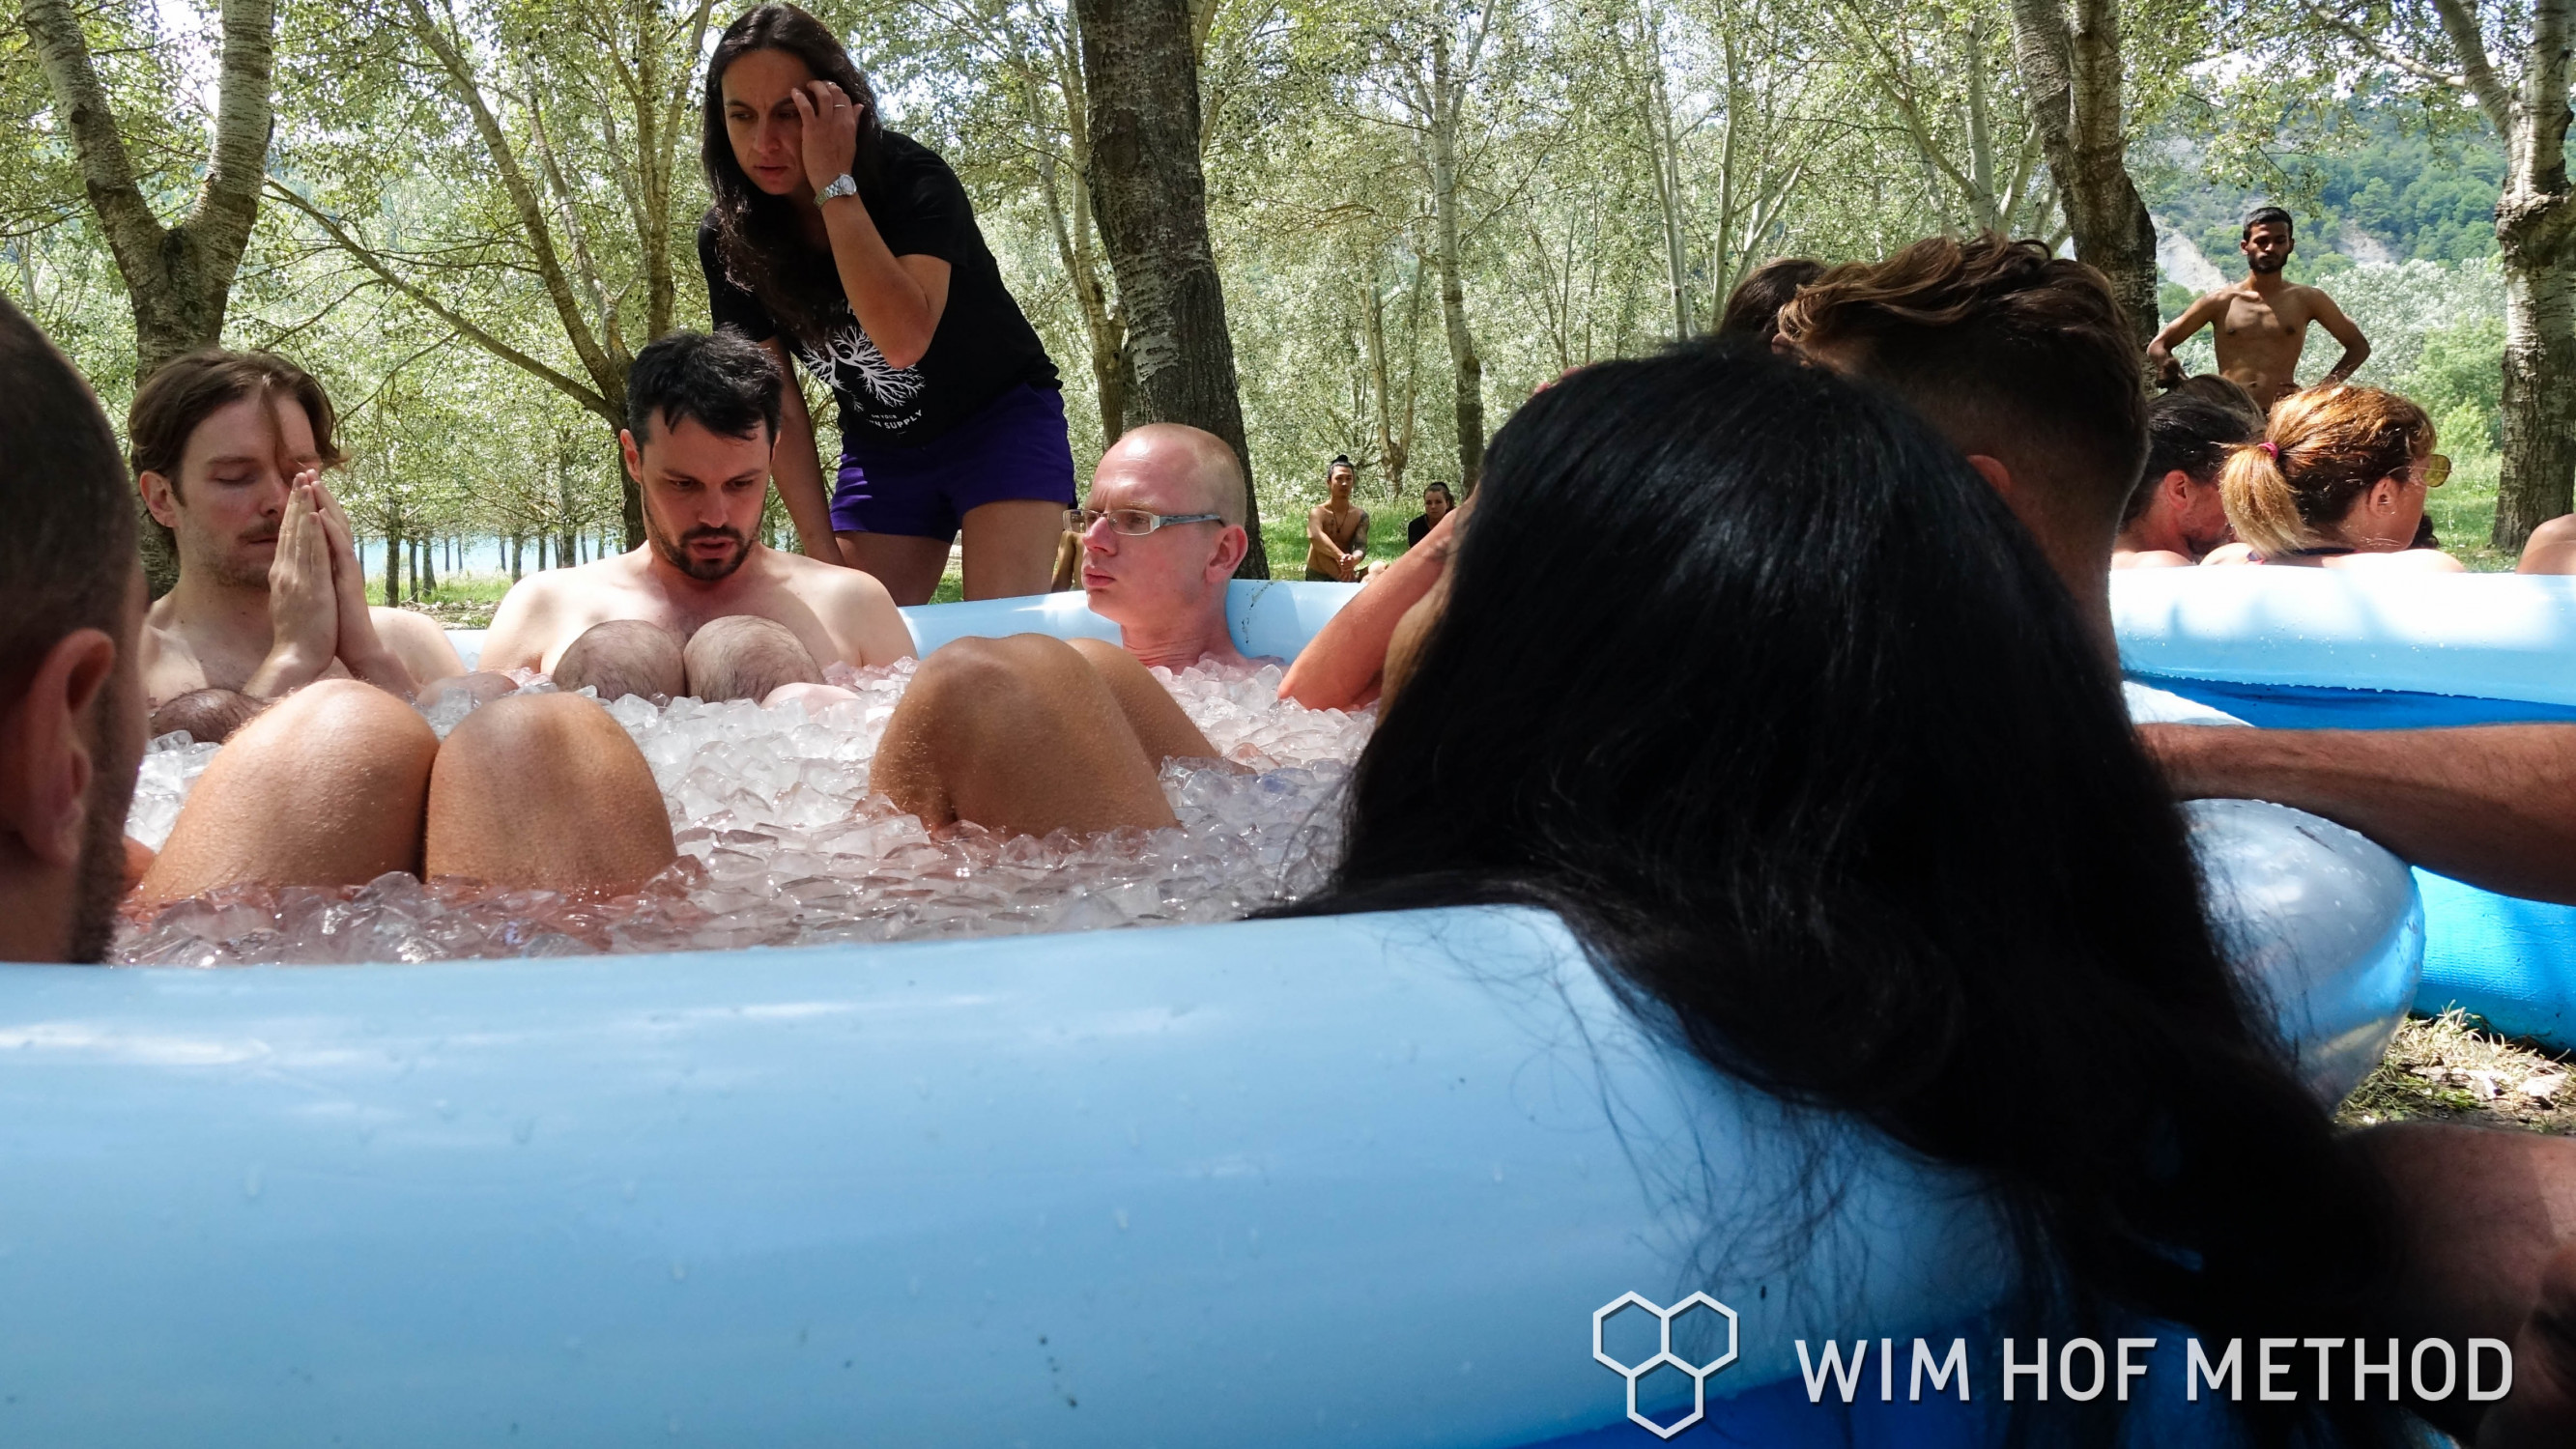 Image 3 of 9 - Experience the Wim Hof Method to get an impression of  at